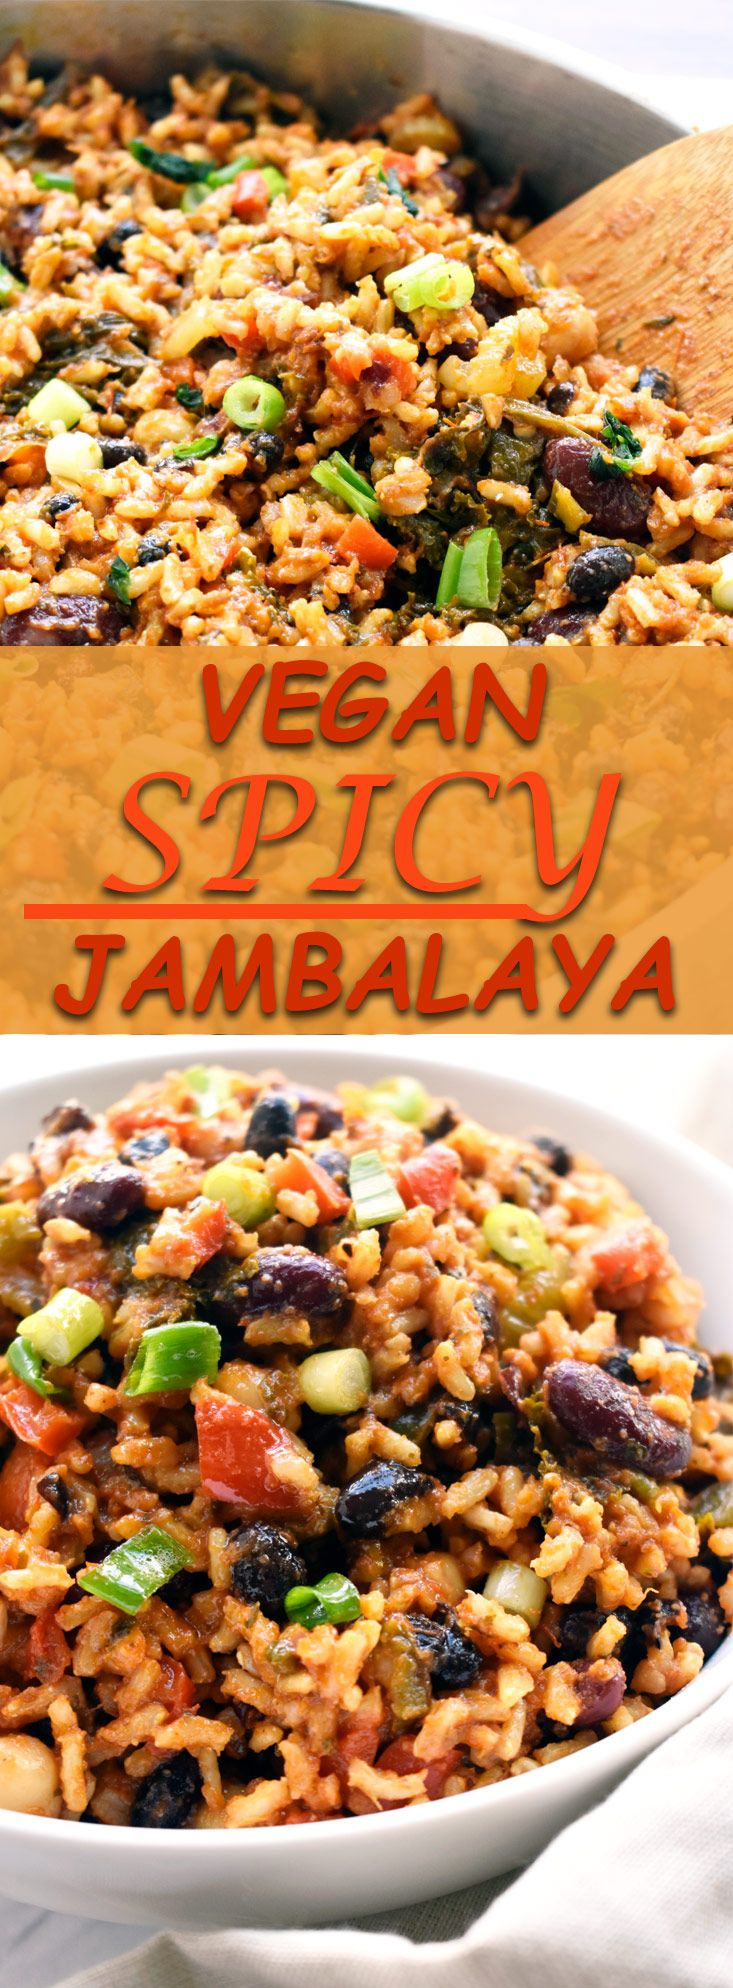 Vegan Spicy Jambalaya